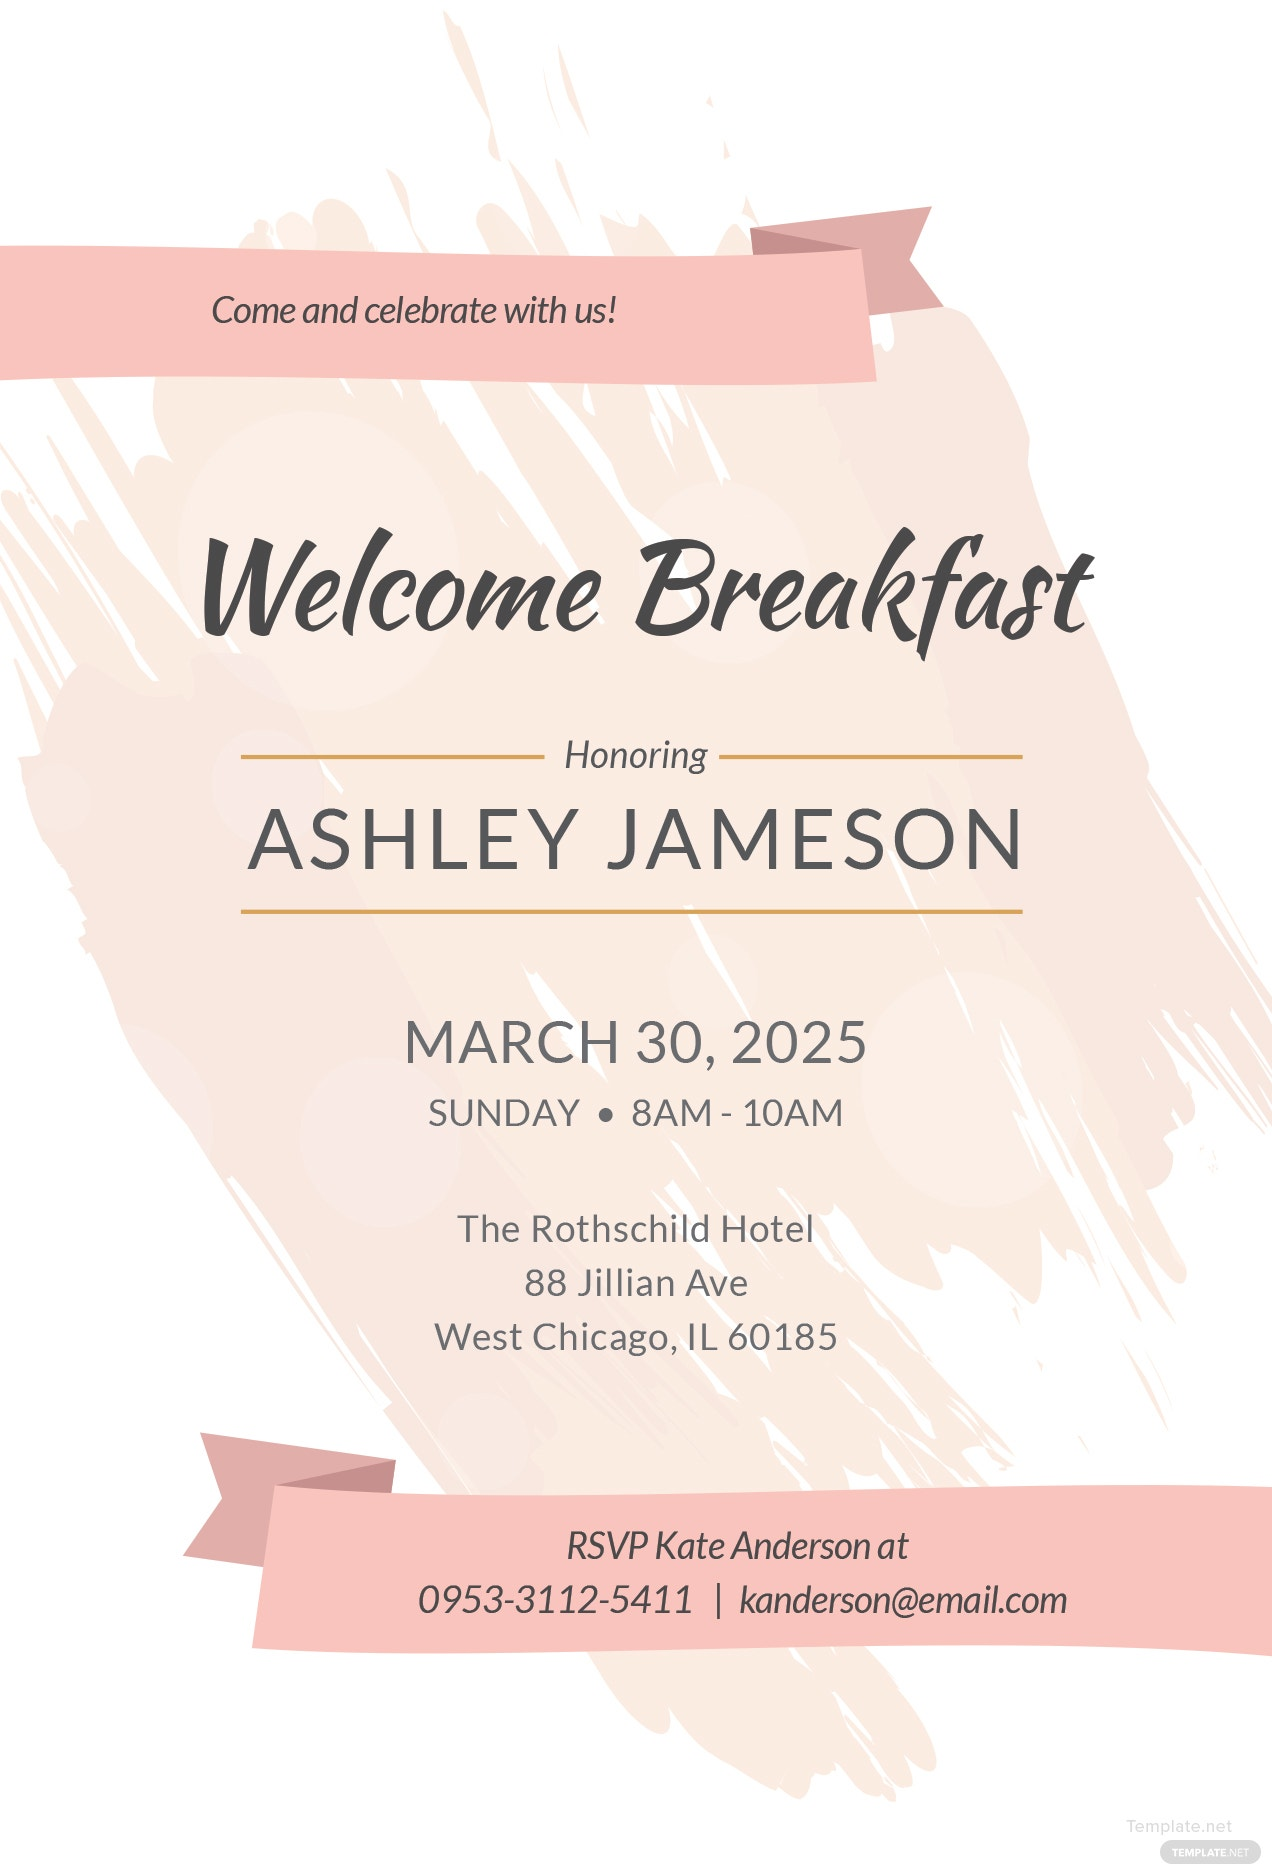 Free Welcome Breakfast Invitation Template in Adobe ...